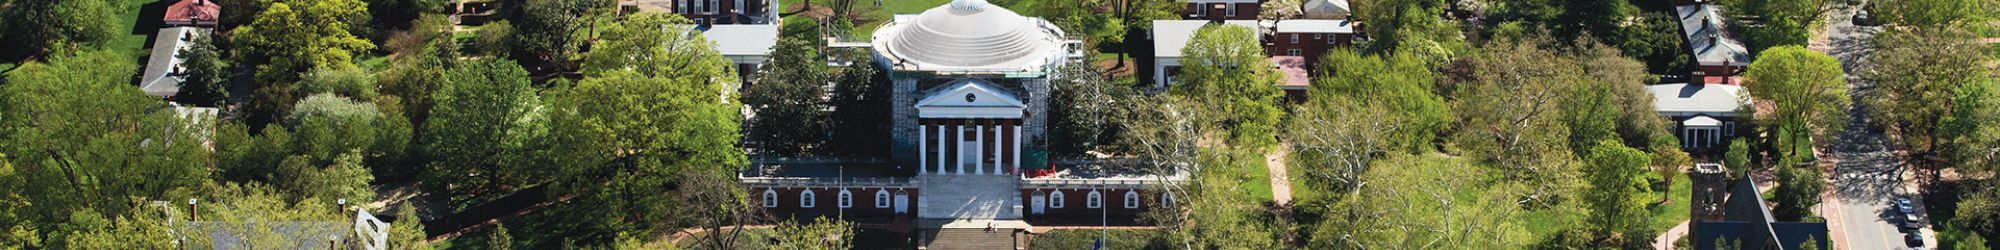 Rotunda aerial view